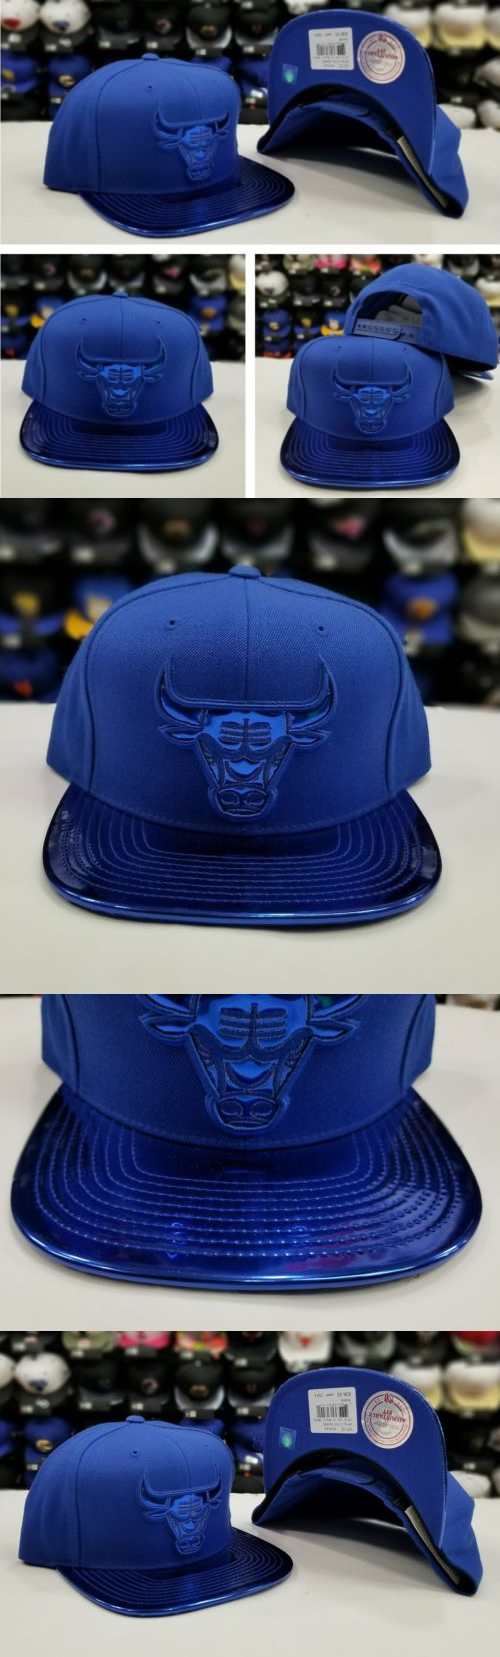 release date 5a614 79dde Hats 52365  New Mitchell Ness Nba Metallic Royal Blue Chicago Bulls  Adjustable Snapback Hat -  BUY IT NOW ONLY   79.99 on eBay!